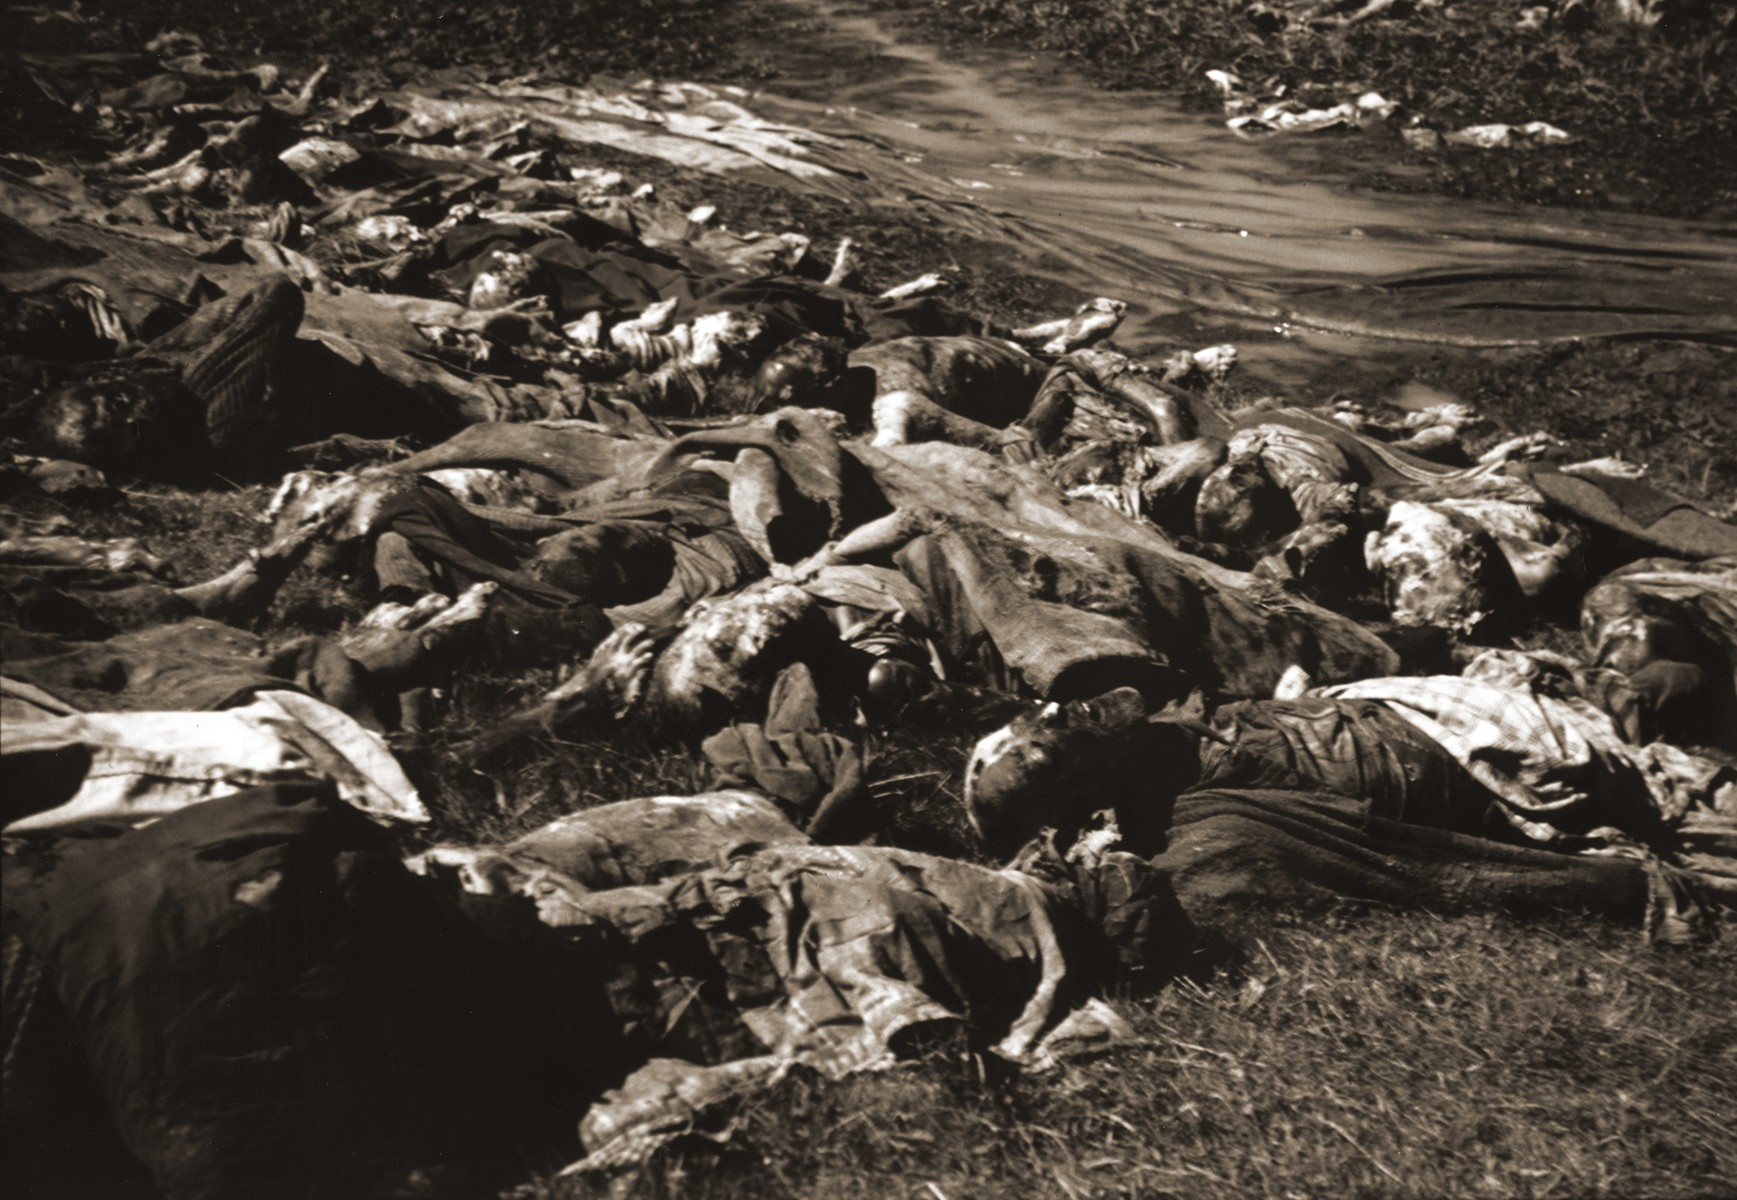 The corpses of prisoners exhumed from a mass grave near Nammering.